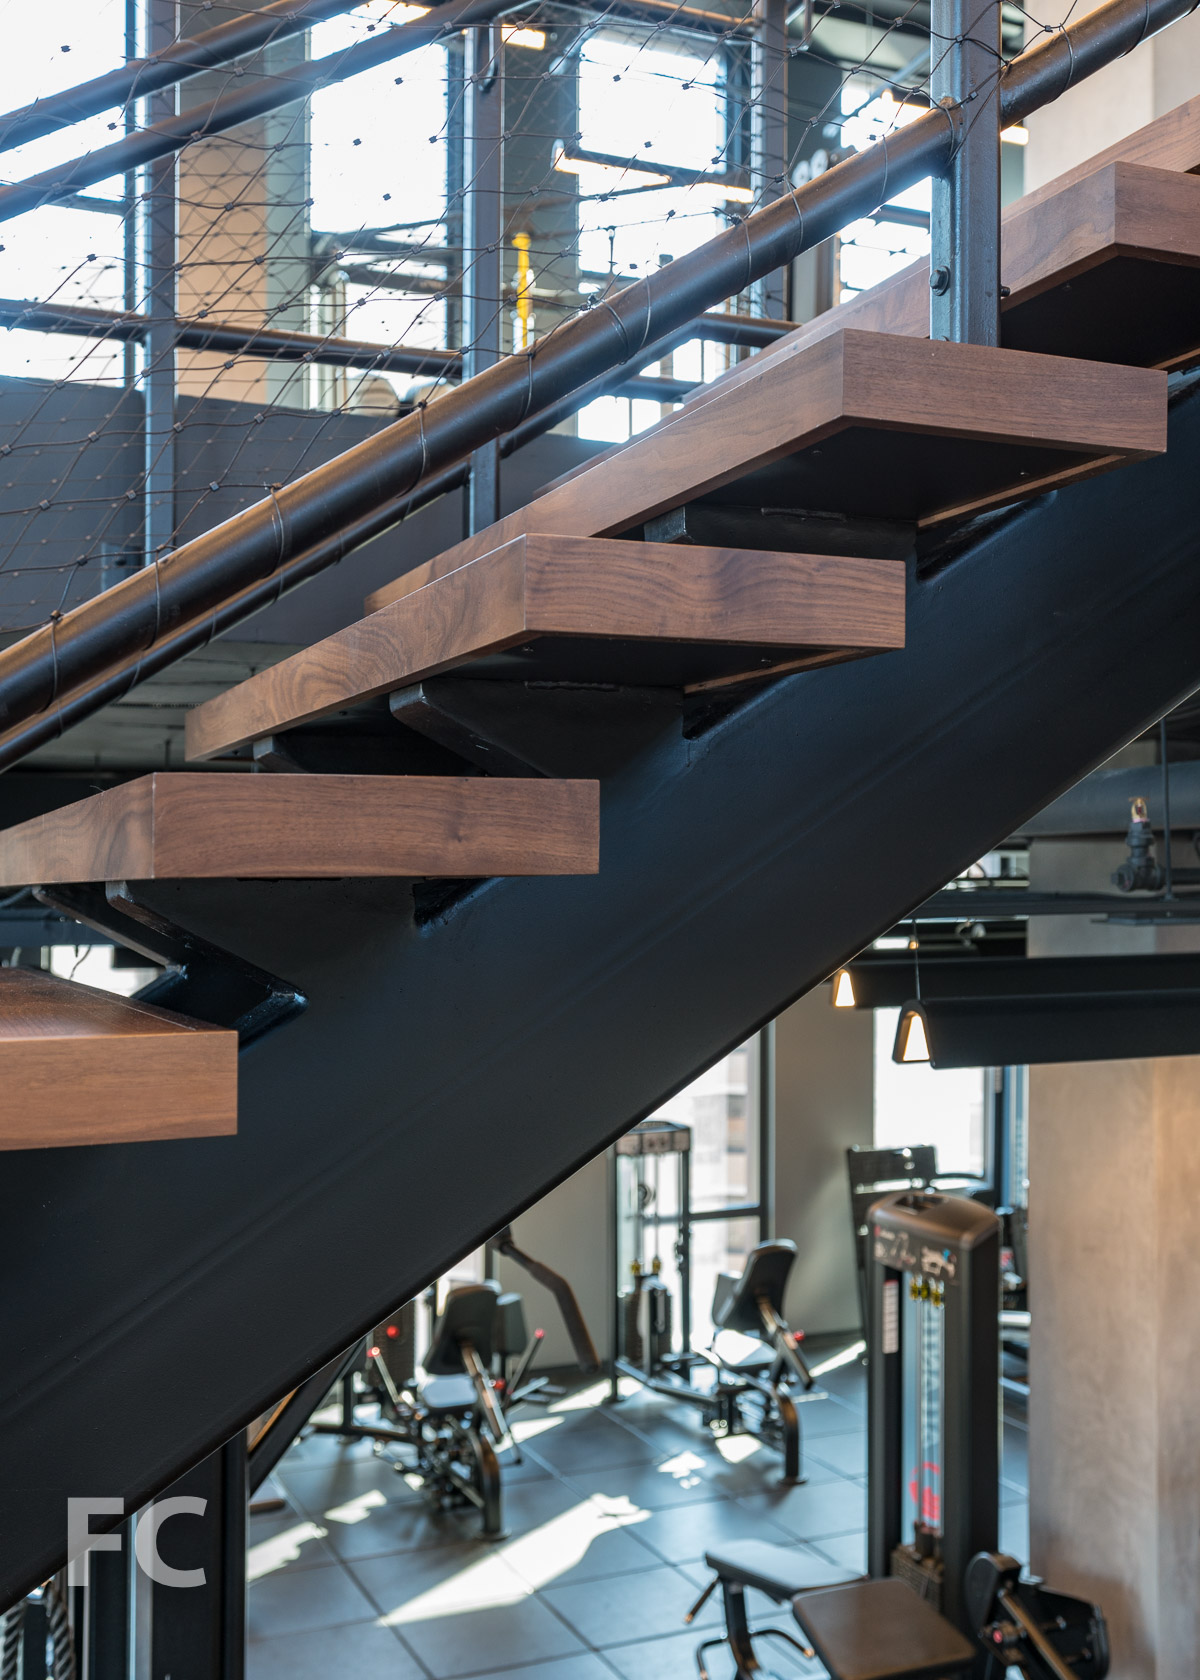 Stair detail in the fitness center.